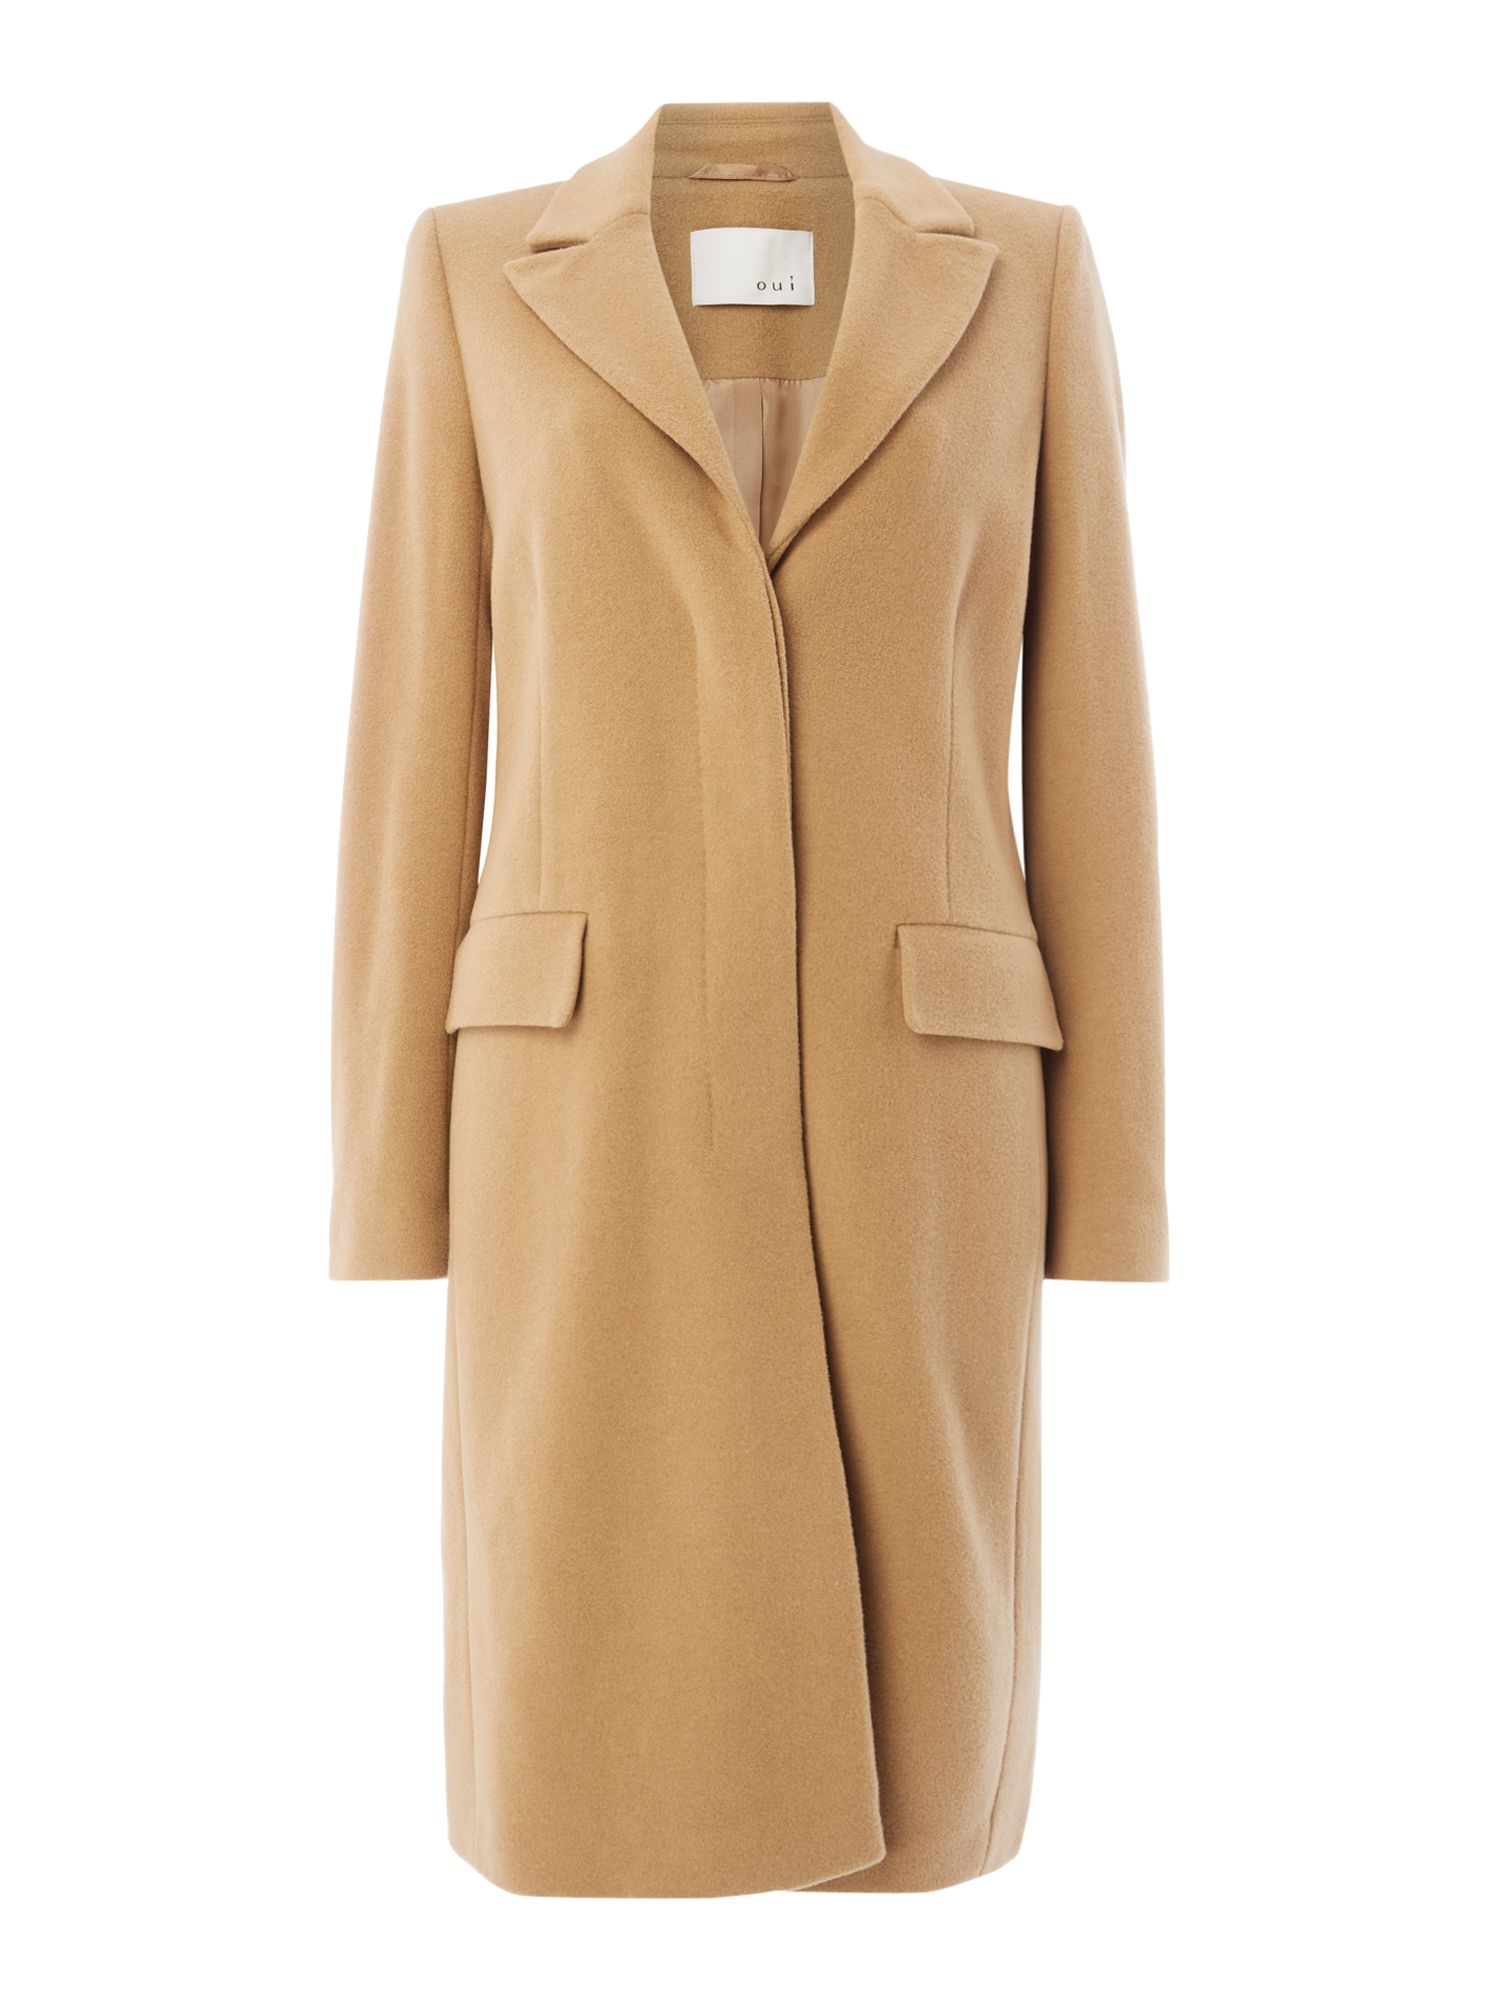 Ladies coats in house of fraser